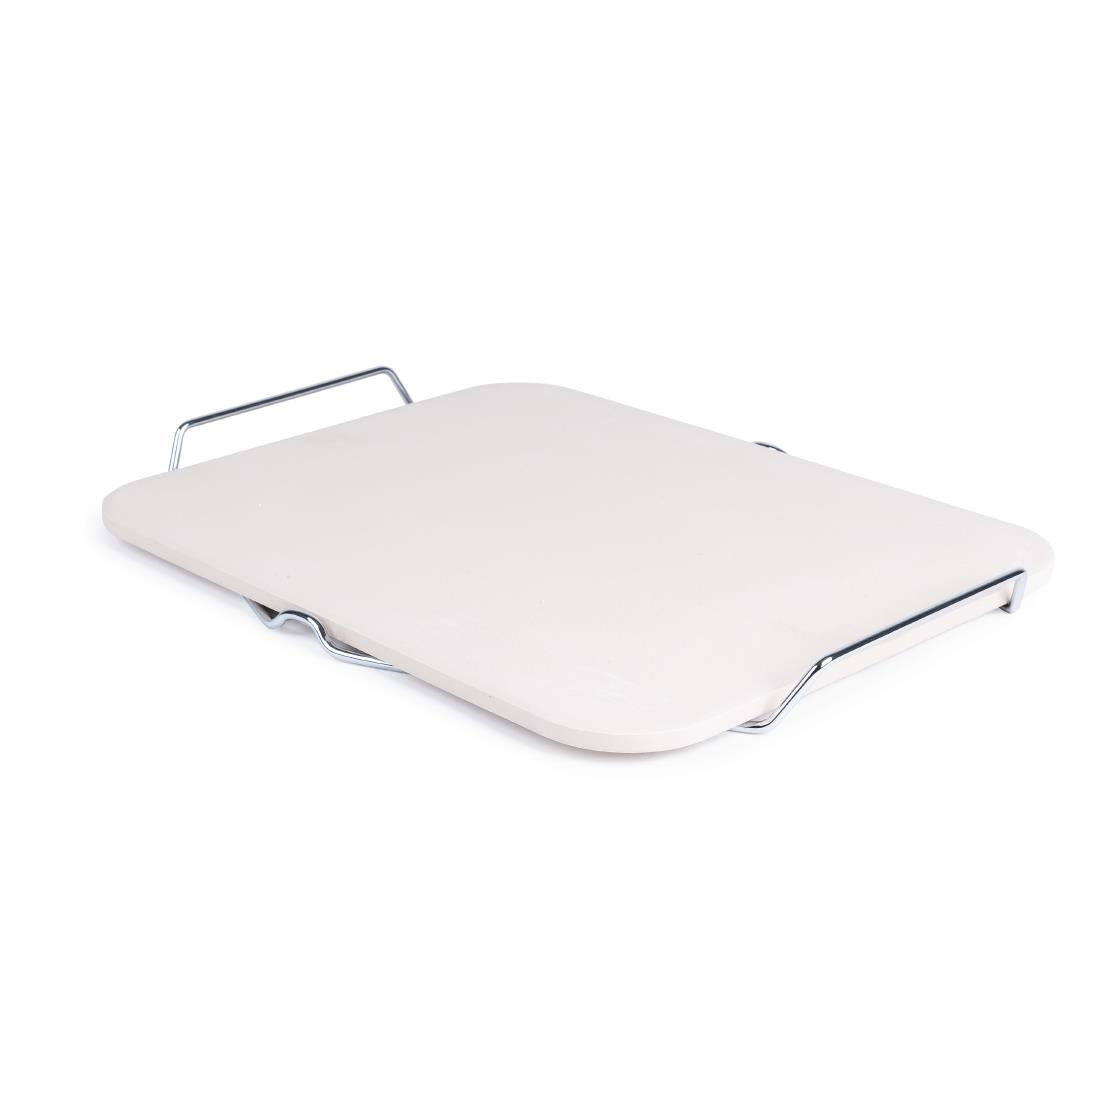 Image of Rectangular Pizza Stone with Metal Serving Rack 15in